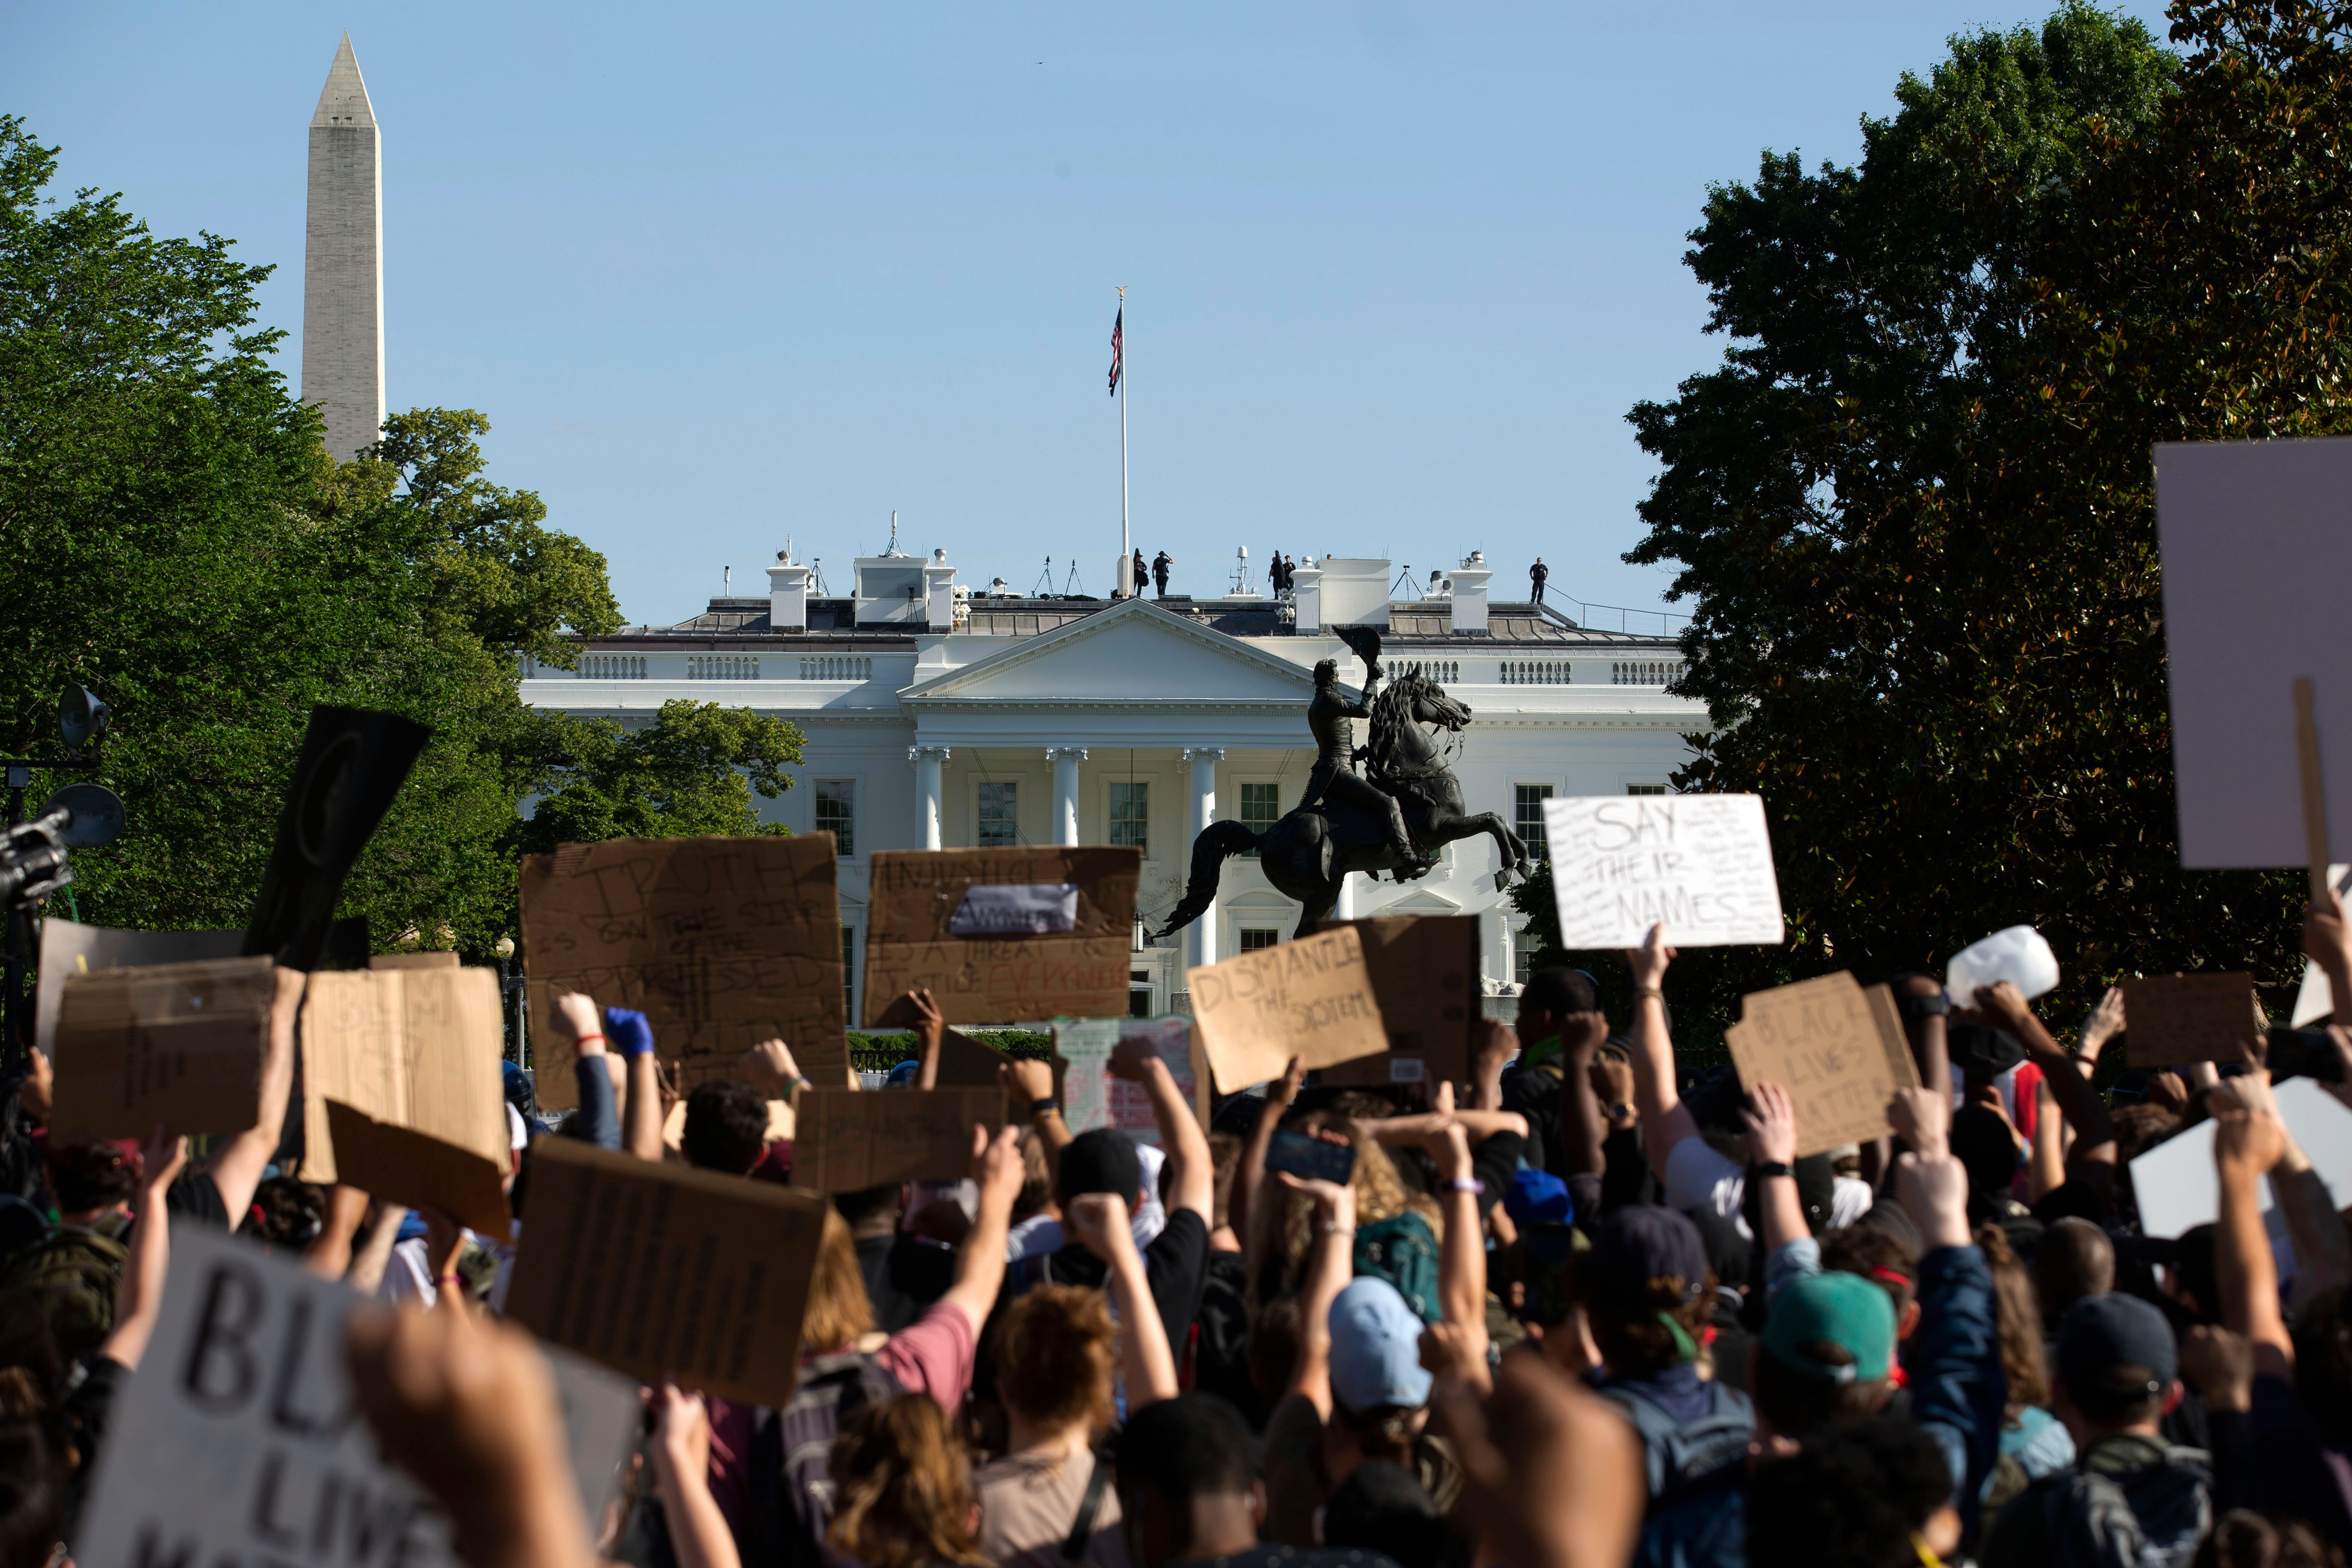 Trump shares letter that calls peaceful protesters outside White